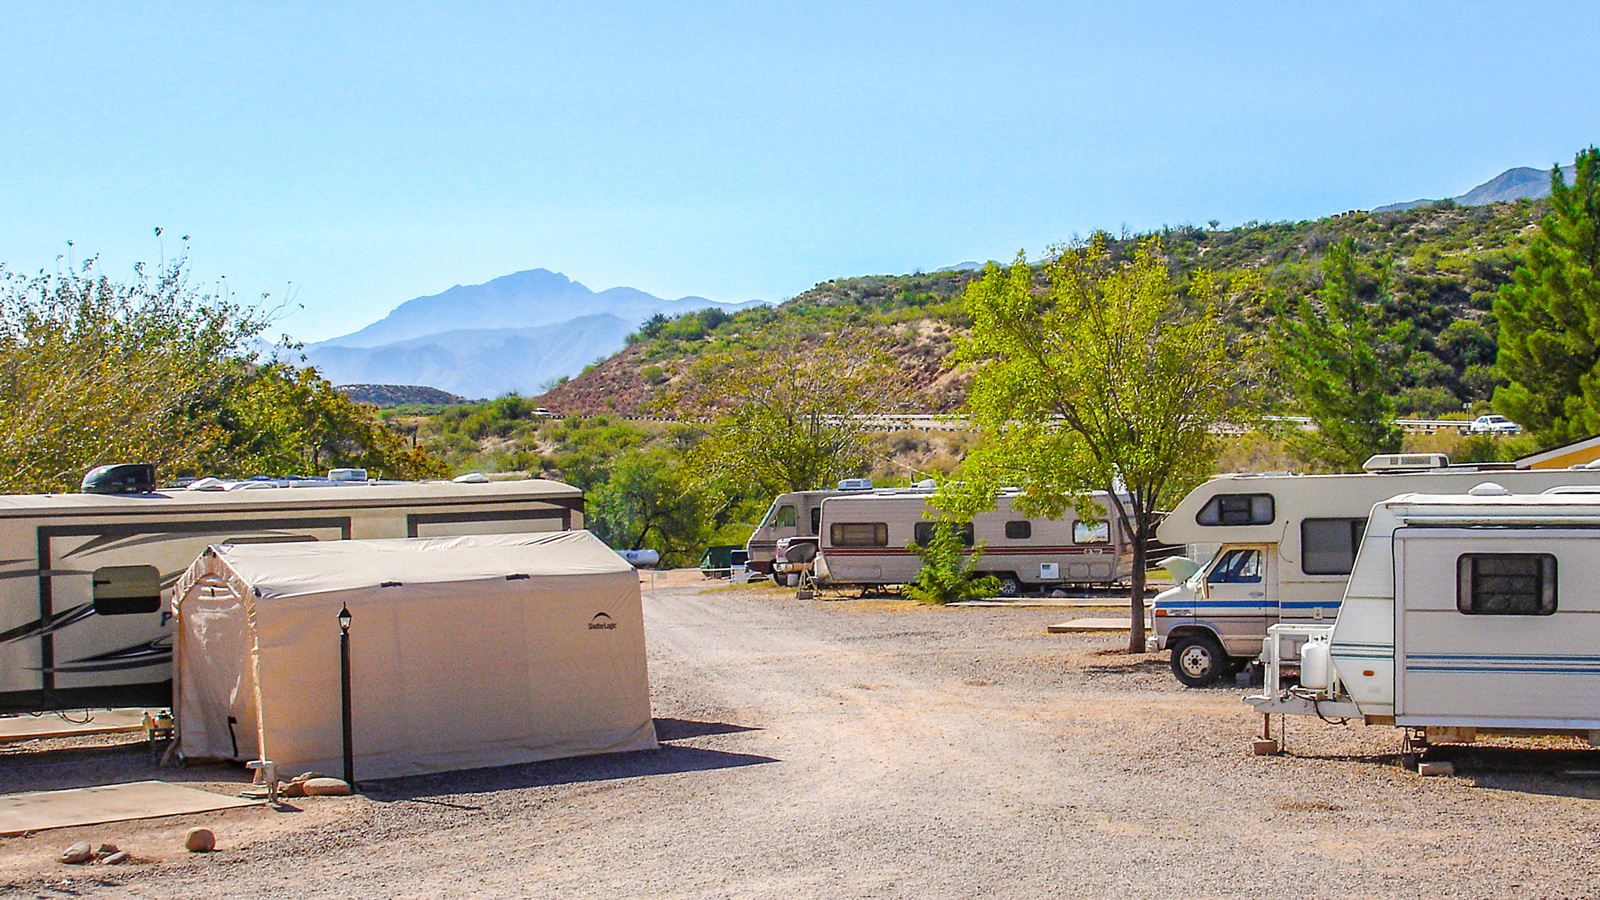 Punkin Center RV Corral | 200 South Old Highway 188, Tonto Basin, AZ 85553 | 43 Spaces | Built in 1991 | $870,000 | $20,232 Per Space